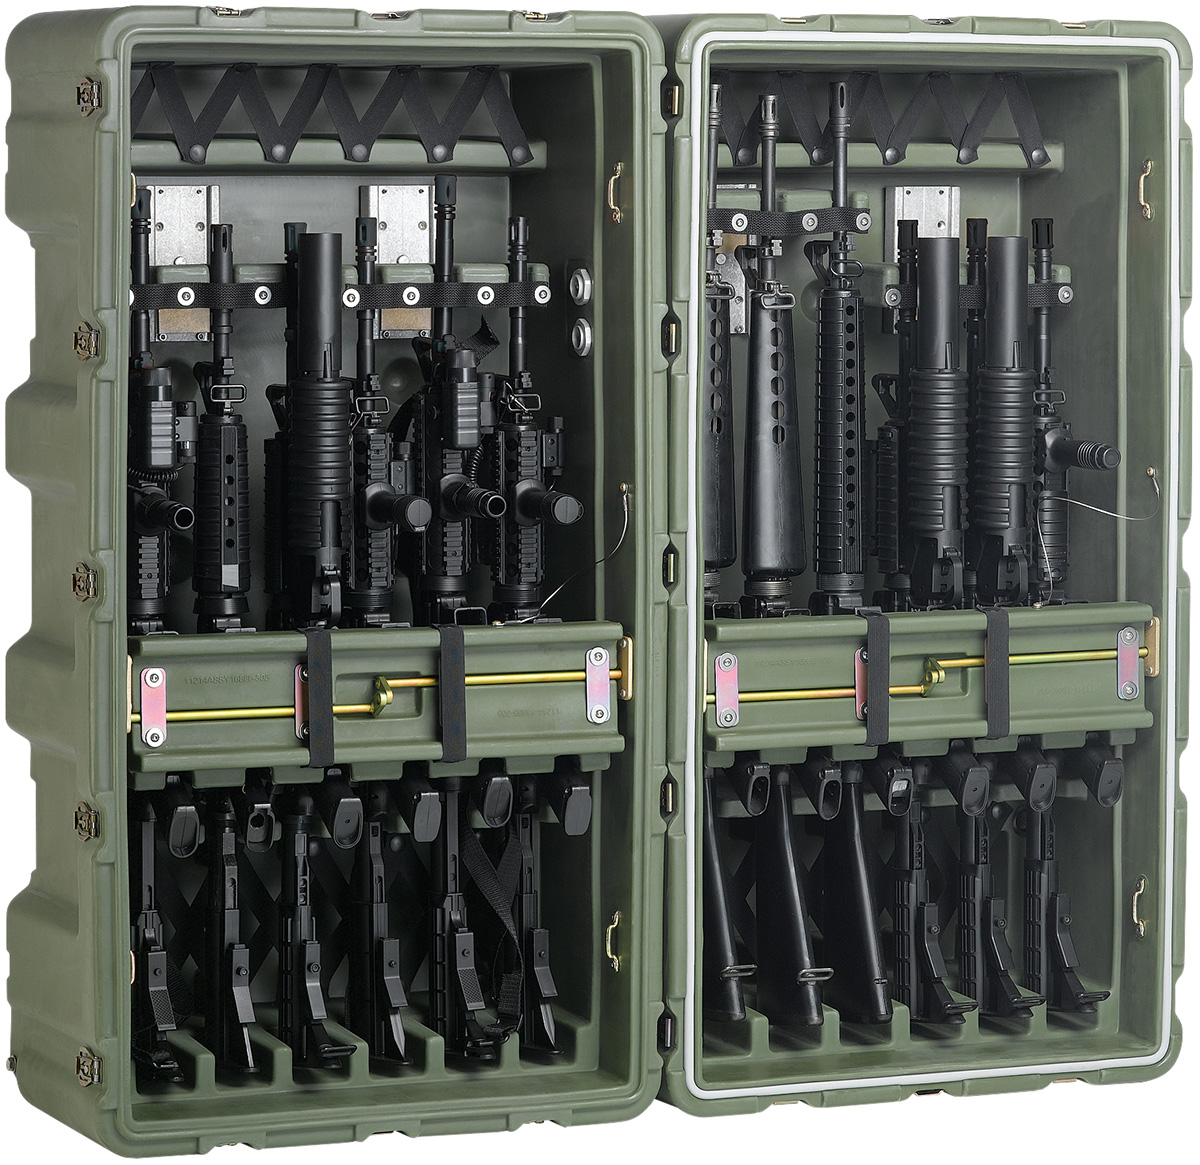 pelican peli products 472 M4 M16 12 usa military m4 m16 large case